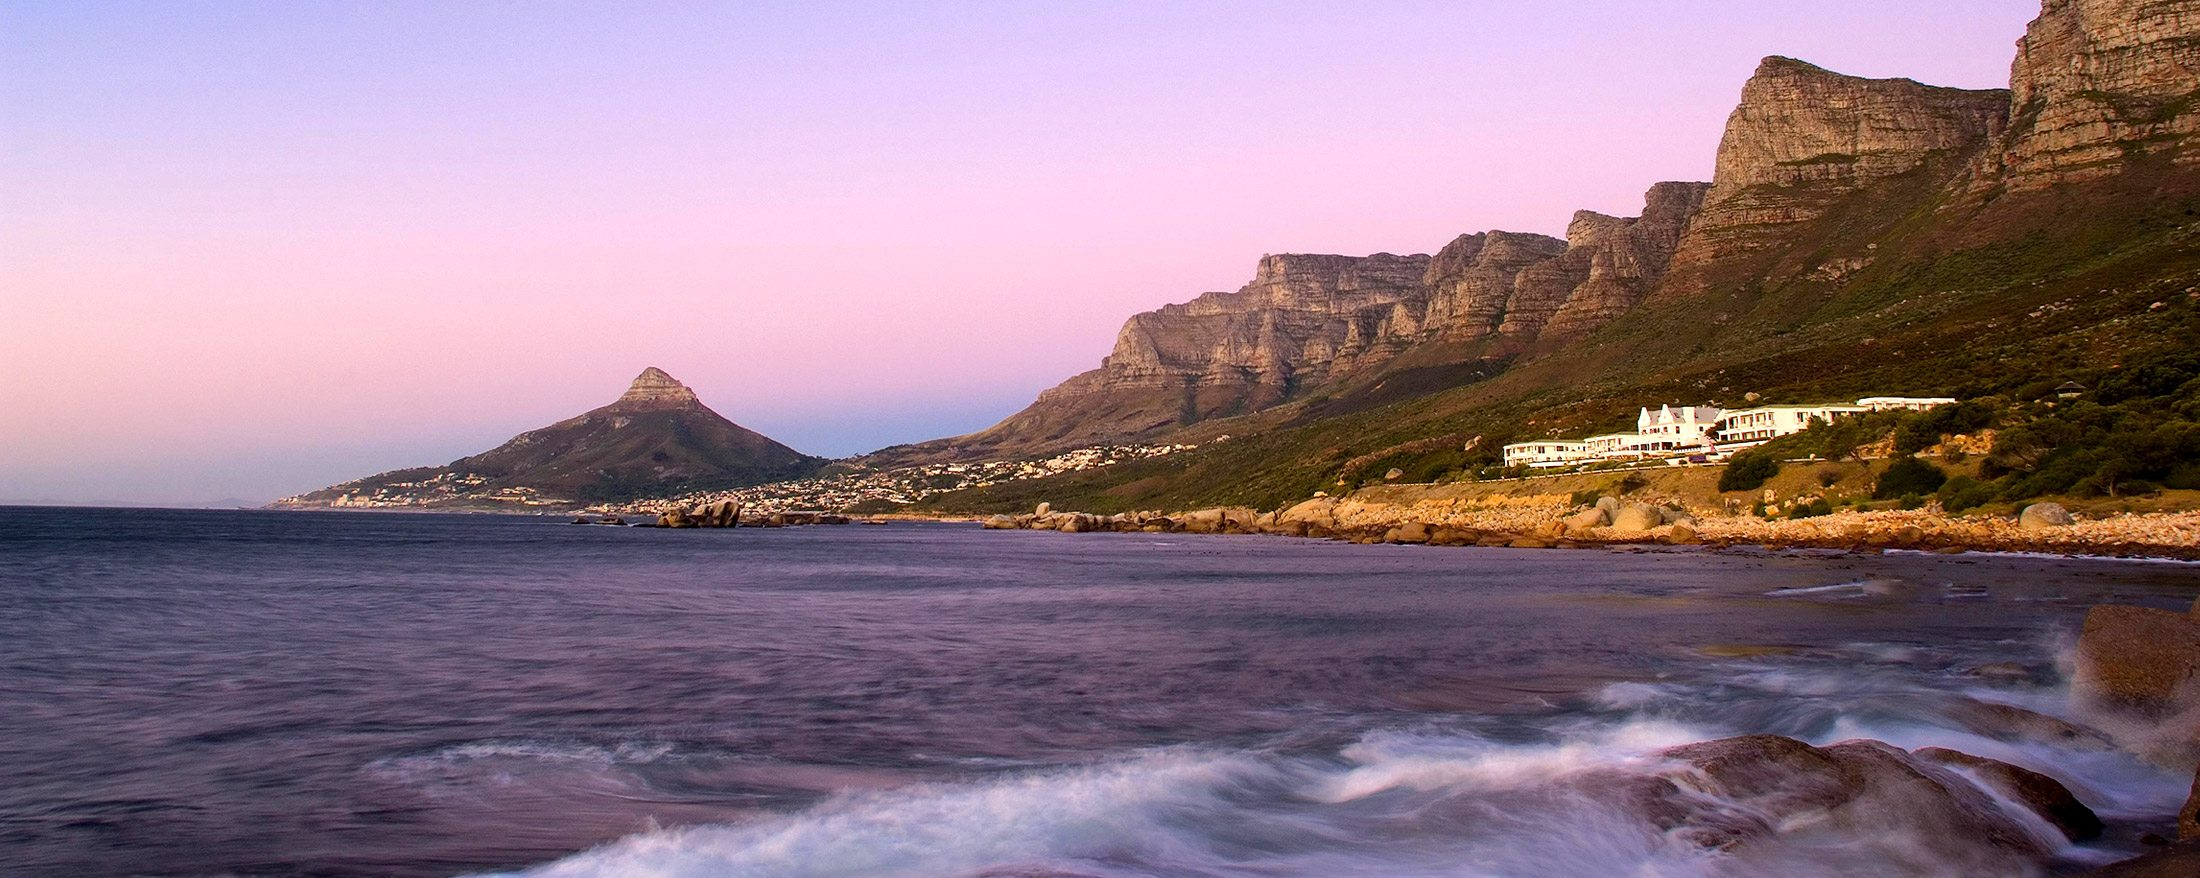 The 12 Apostles Hotel and Spa is tucked between ocean and mountain.